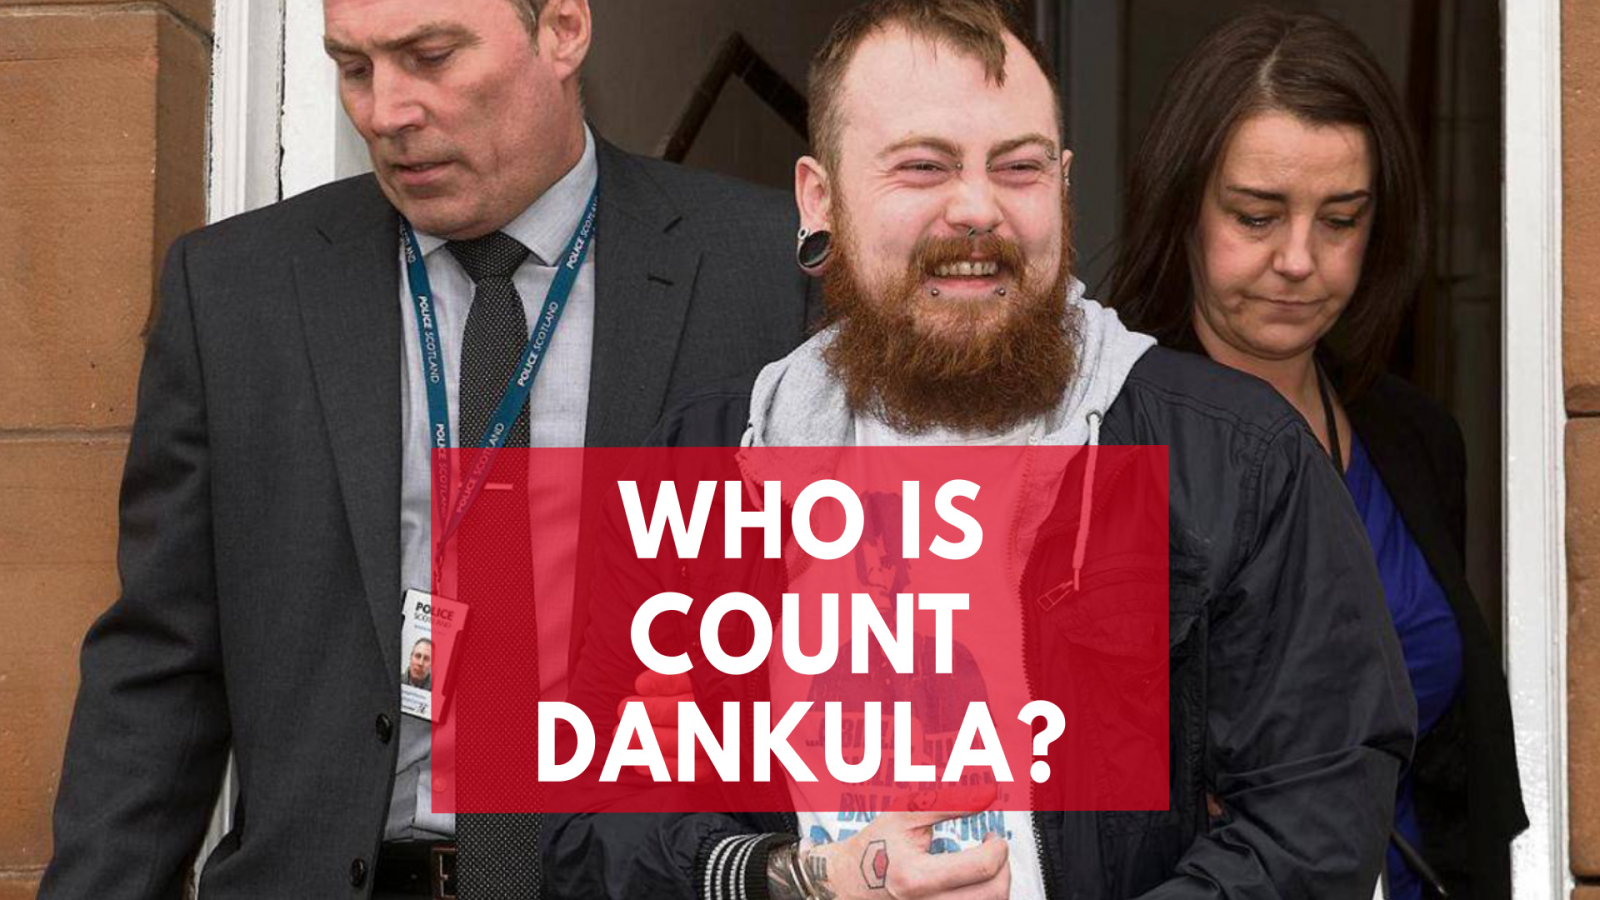 who-is-count-dankula-youtuber-convicted-over-offensive-nazi-salute-video